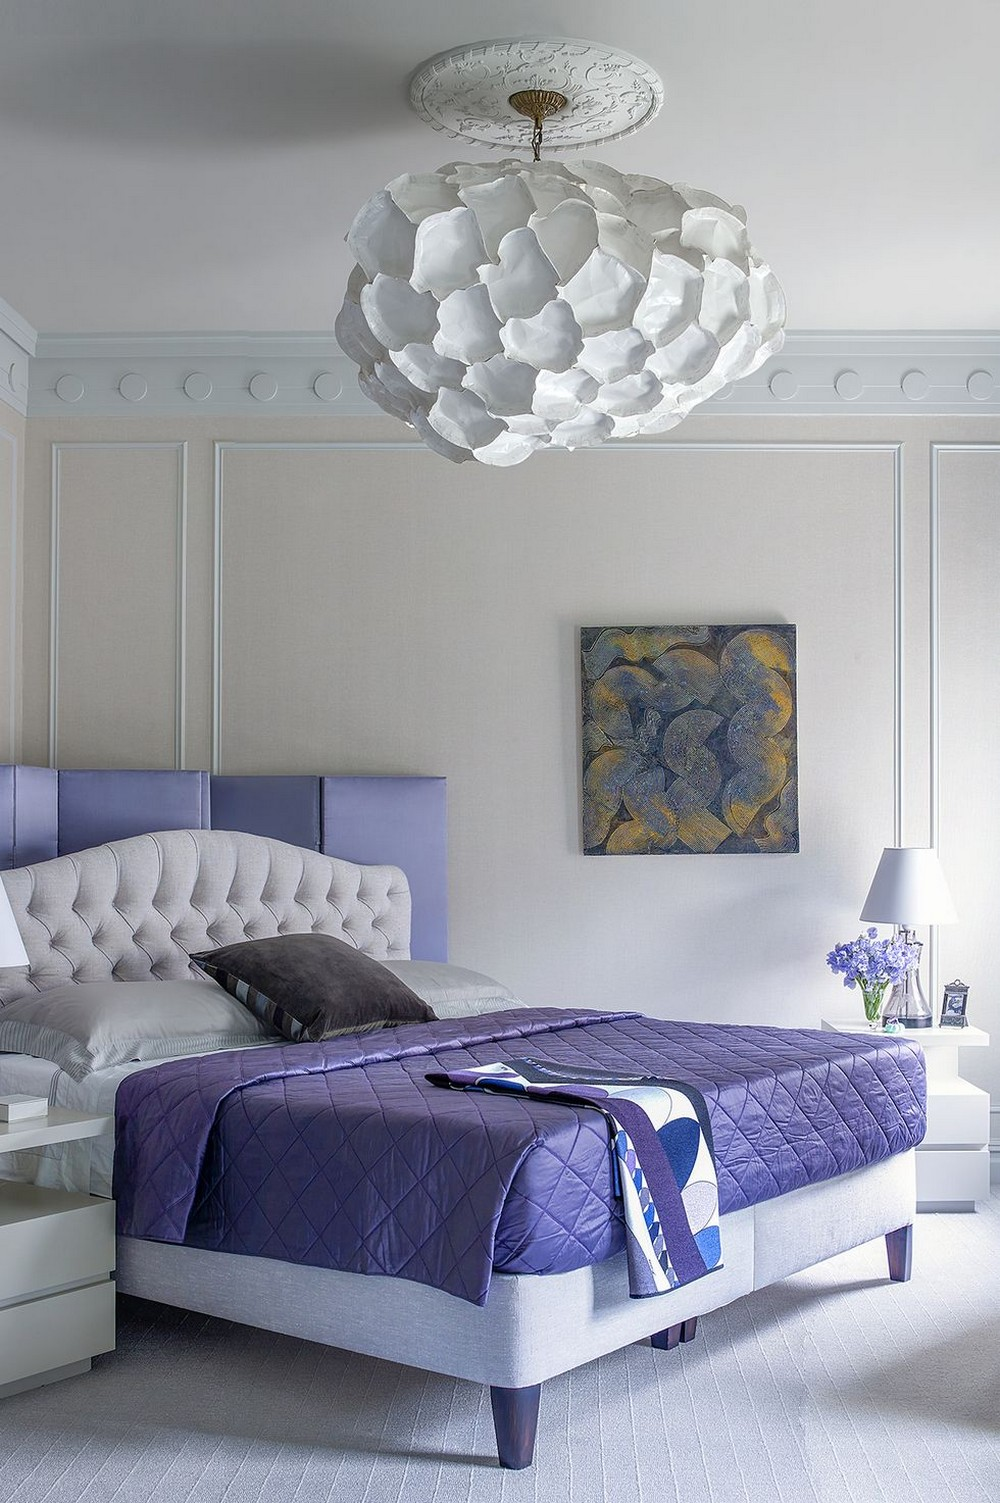 9 Exquisite Bedroom Lighting Ideas for a Modern Interior Decor 9